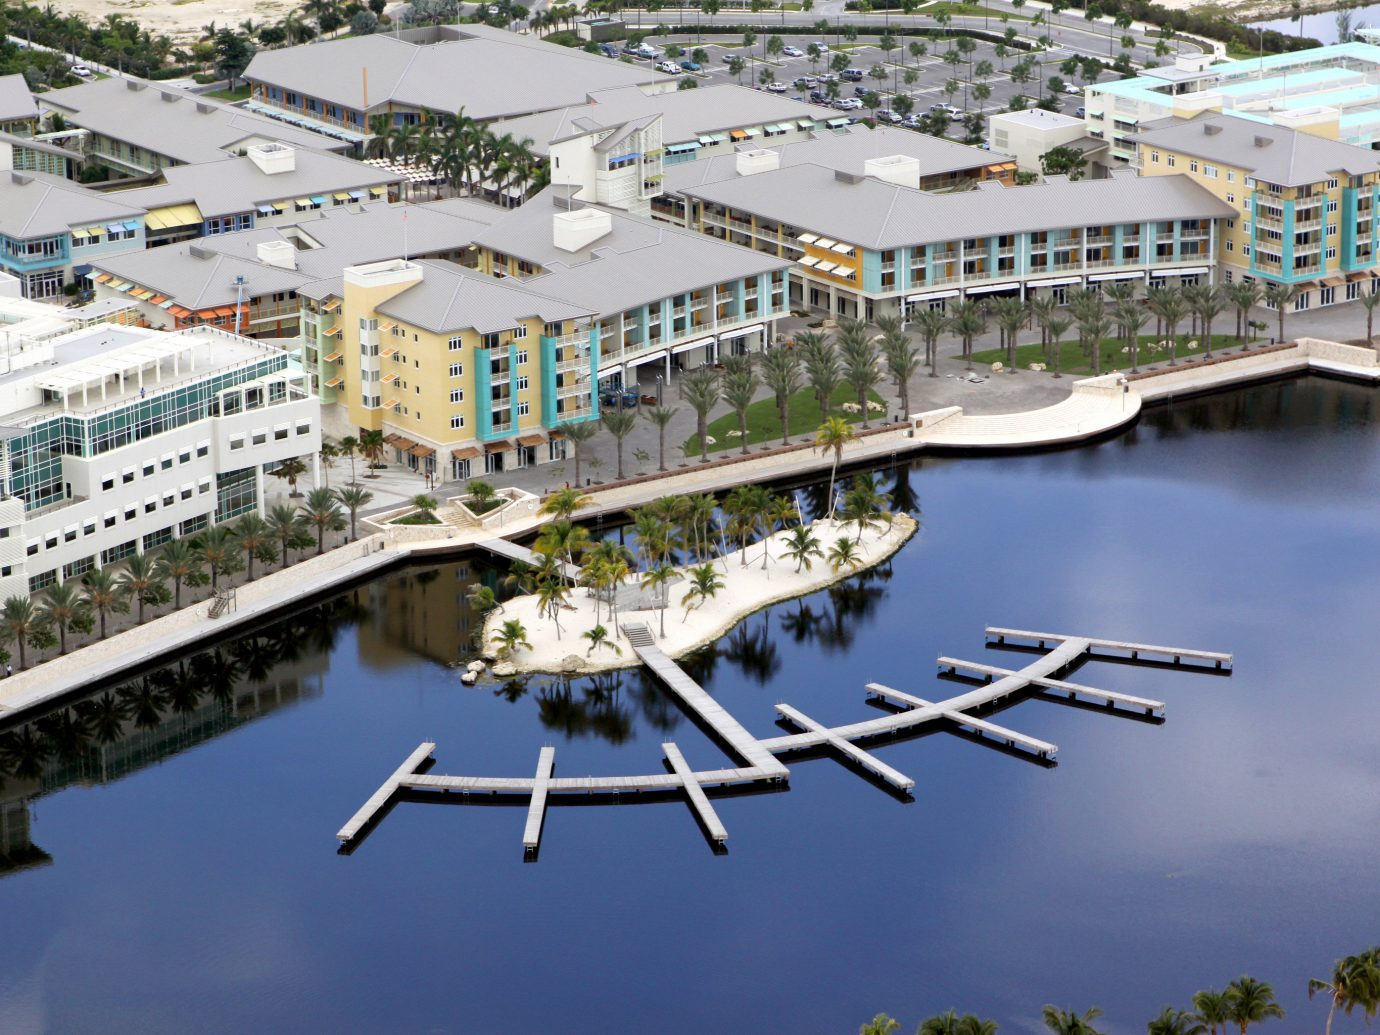 Trip Ideas marina outdoor dock aerial photography bird's eye view residential area bridge River cityscape reflection urban design port